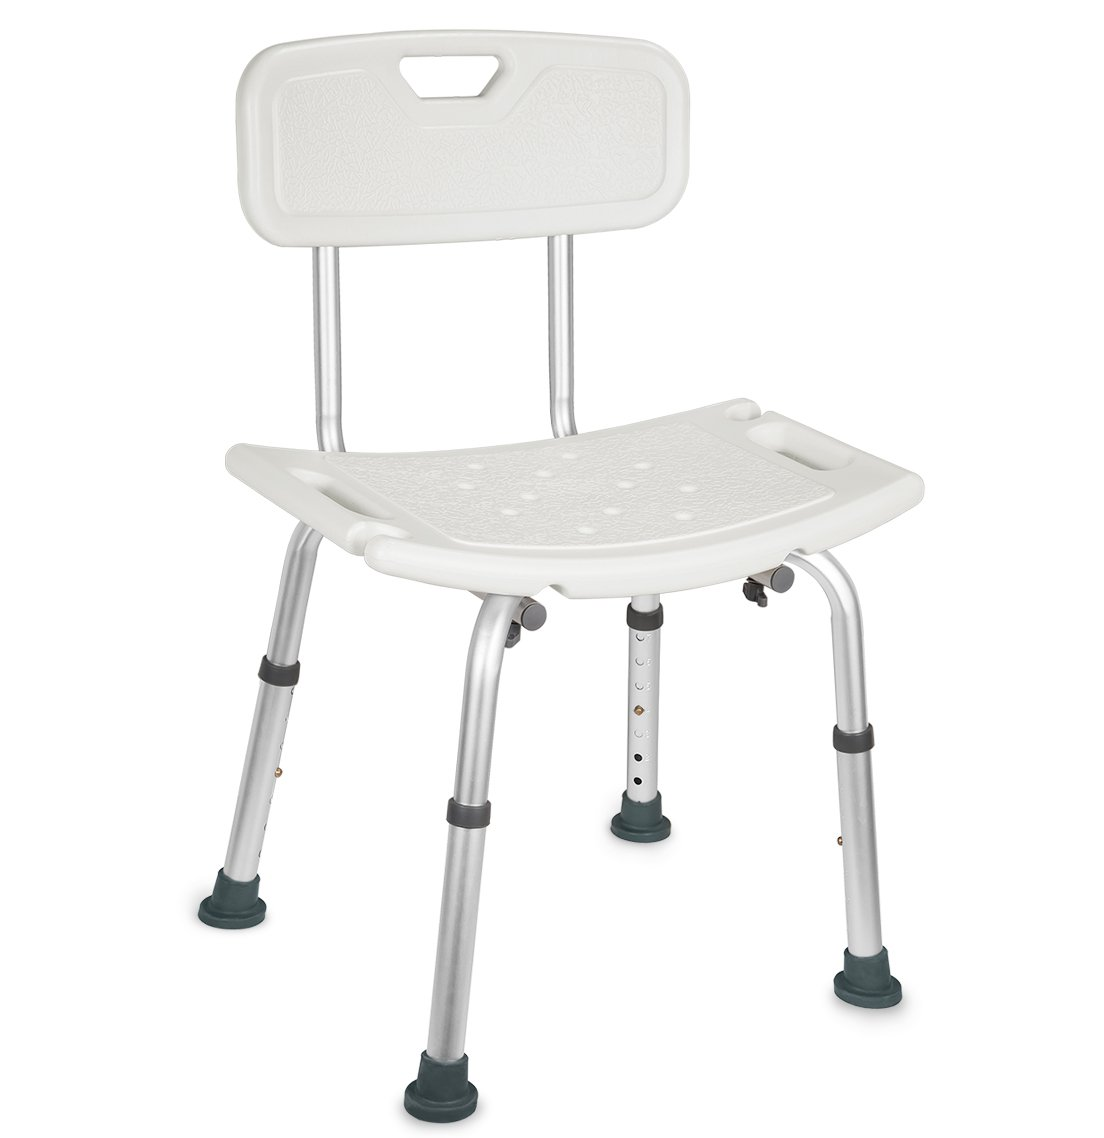 Marine Moon, Adjustable Shower Chair with Handles and Removable Back, Collapsible Shower Seat, Tool-Free Assembly, White